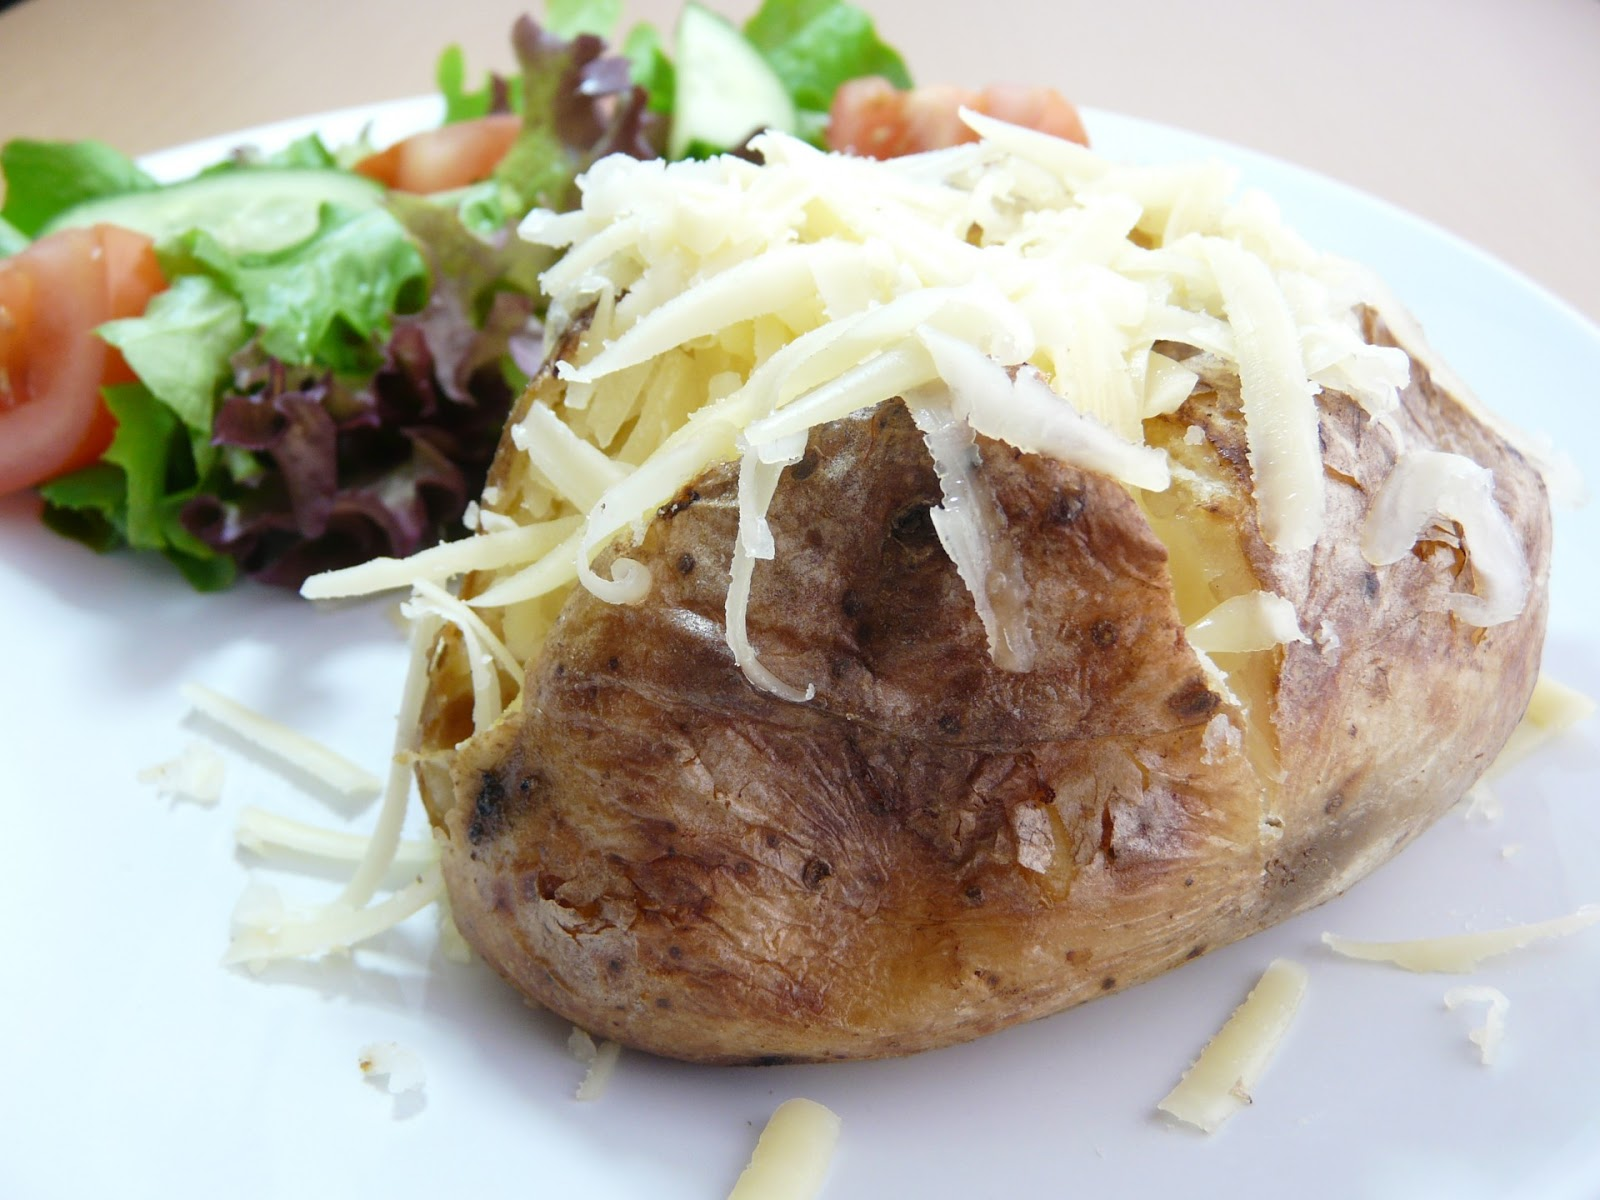 http://www.publicdomainpictures.net/pictures/50000/velka/jacket-potato-baked-potato.jpg